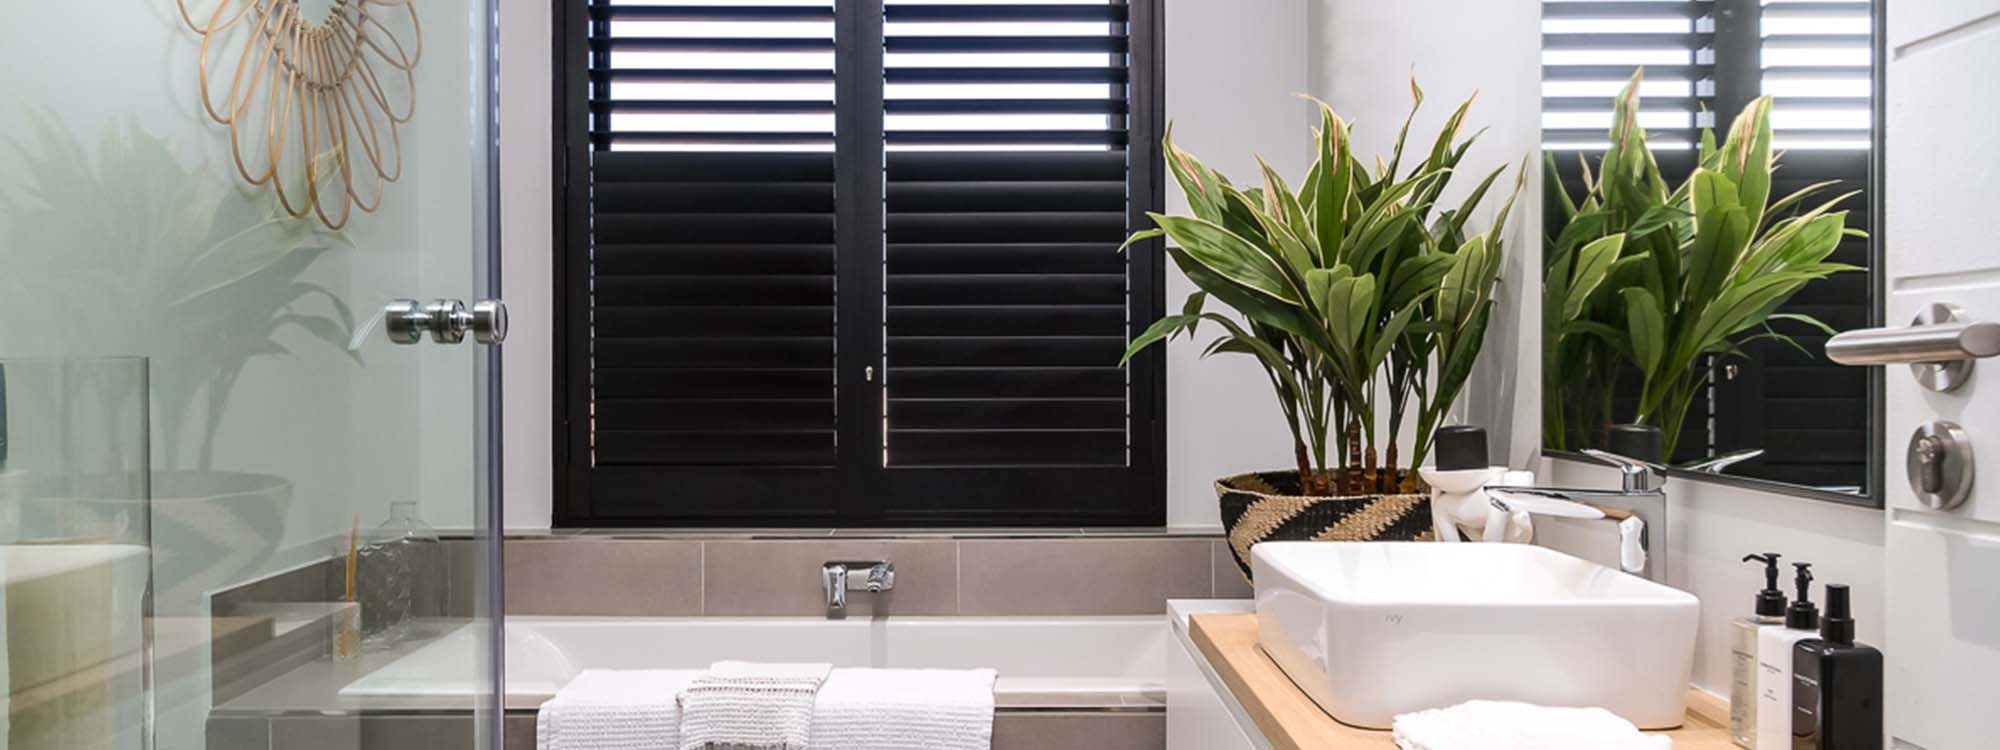 Security-shutters-bathroom-full-view2